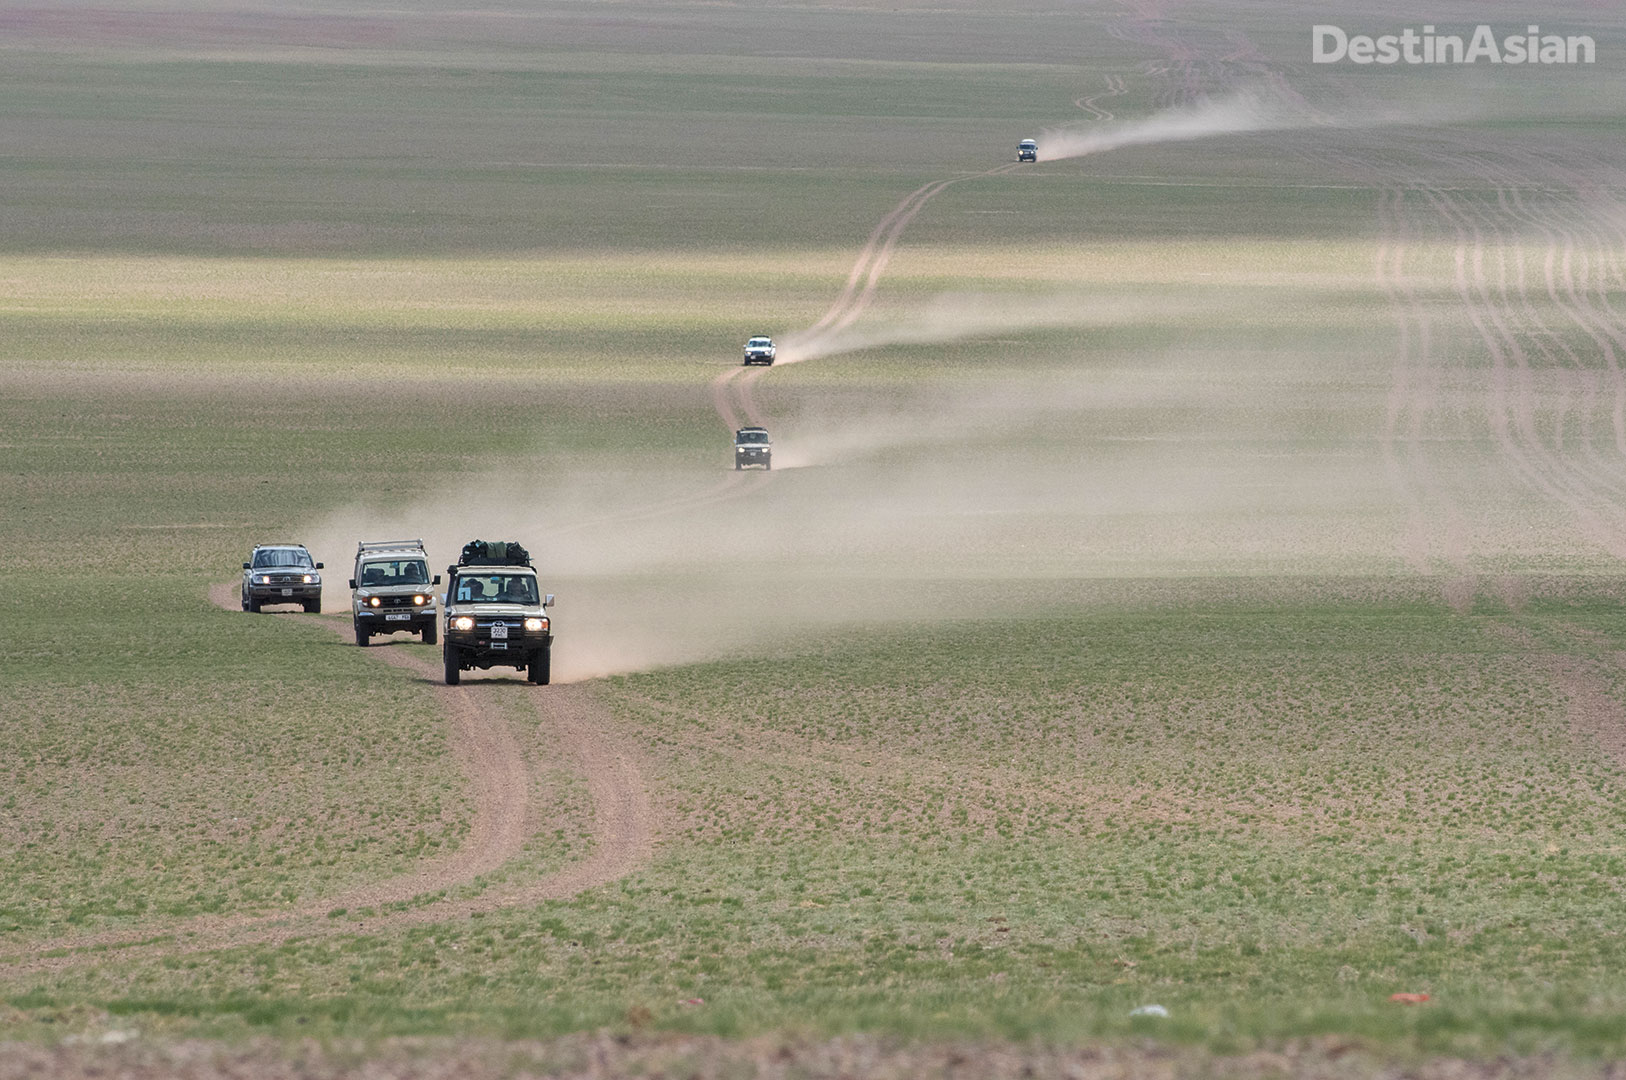 Bruce Elfstrom's convoy crossing an empty stretch of steppe.